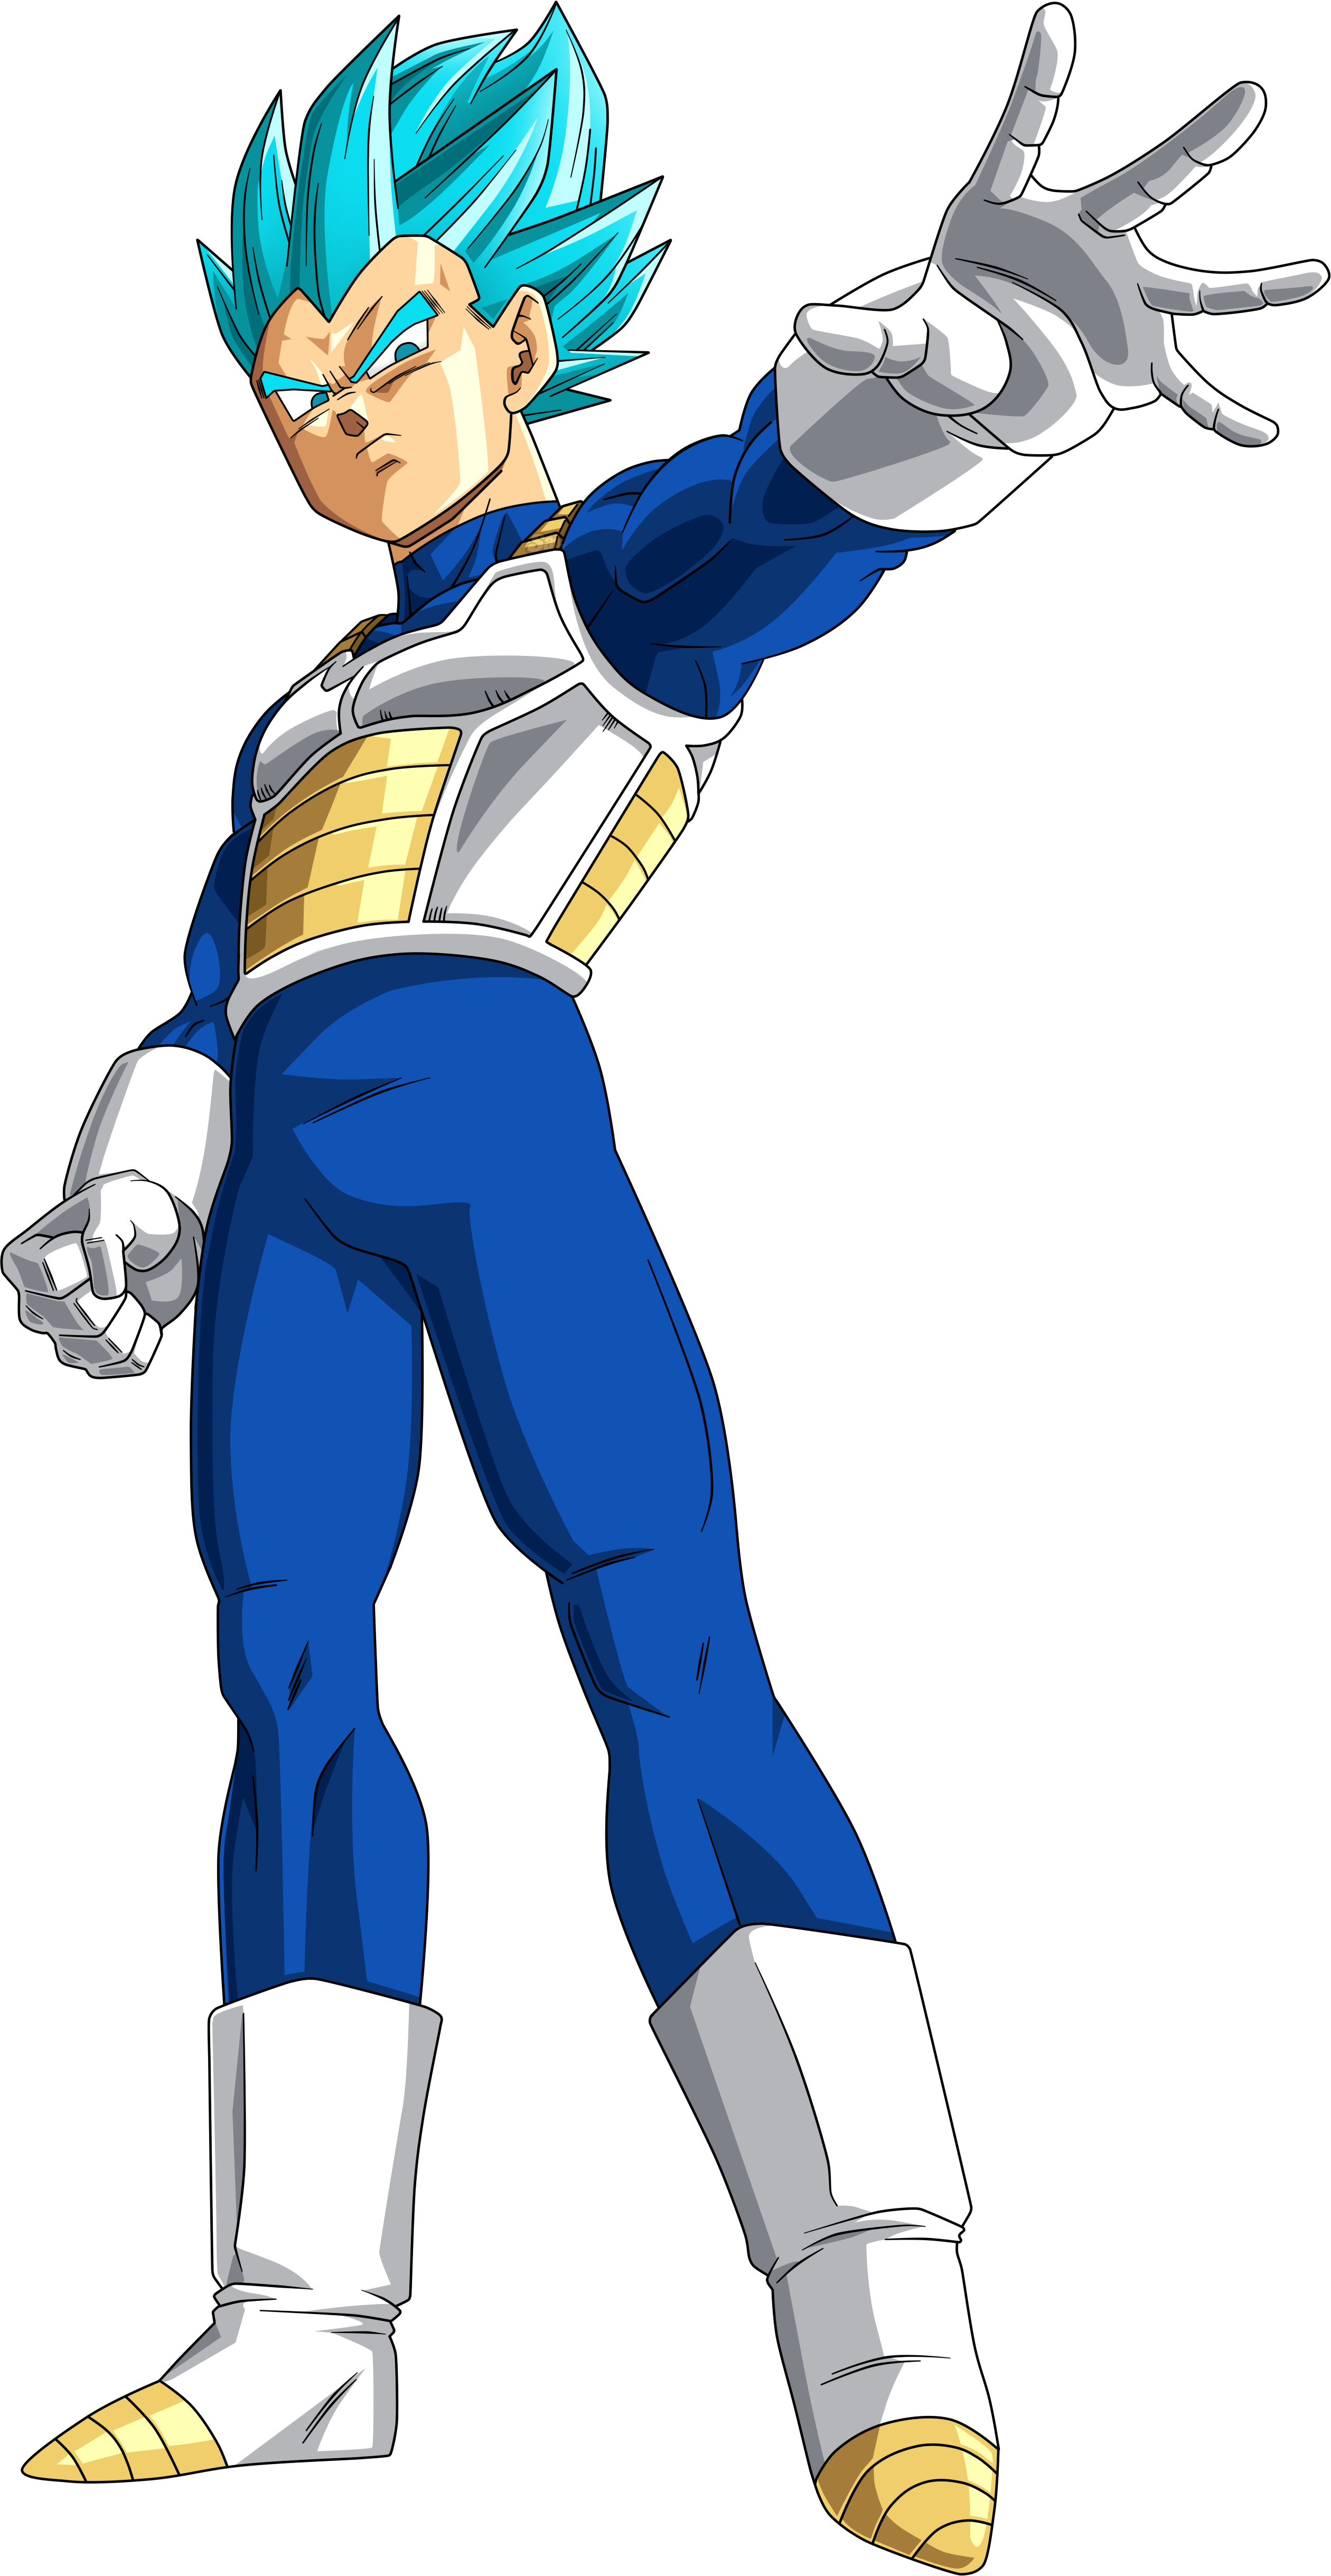 Vegeta Super Saiyan Blue Sticks Arm Out Render.png